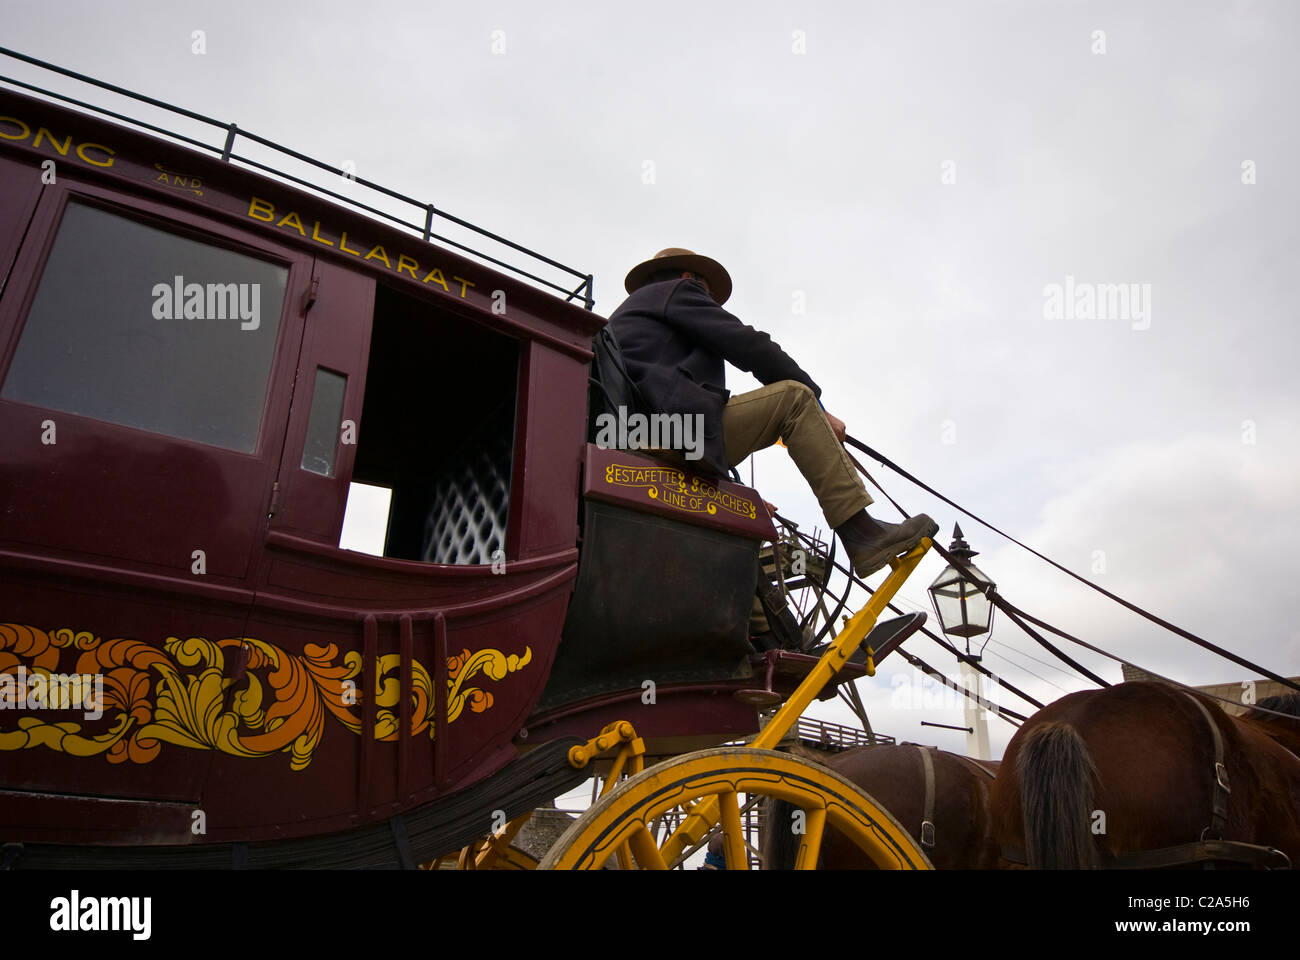 A coachman drives a stagecoach and team of horses. - Stock Image